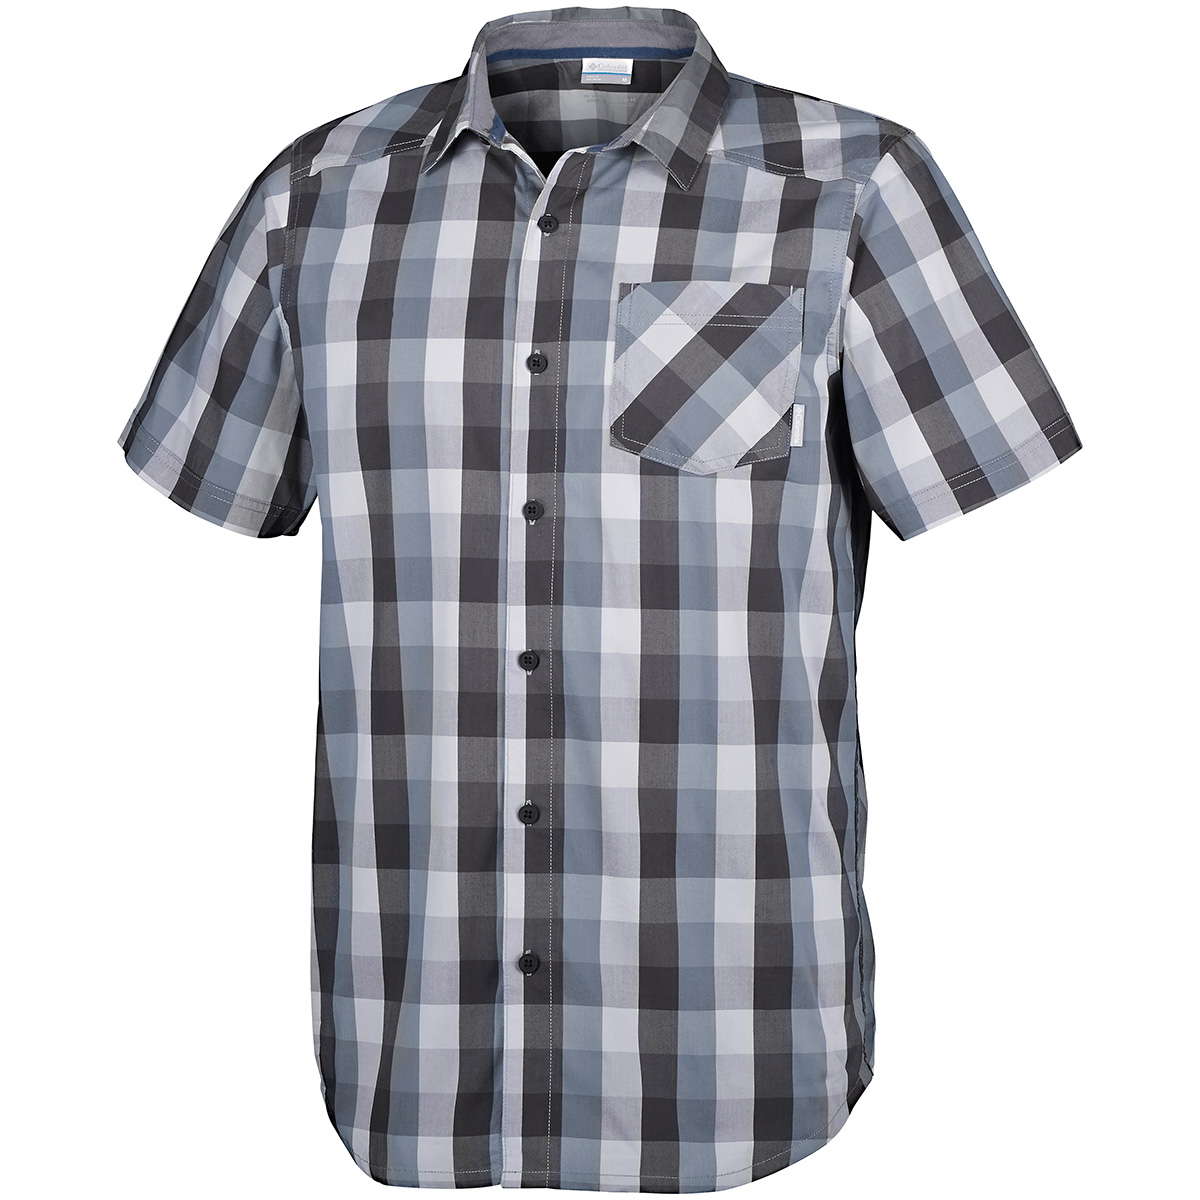 Decoy Rock II Short Sleeve Shirt